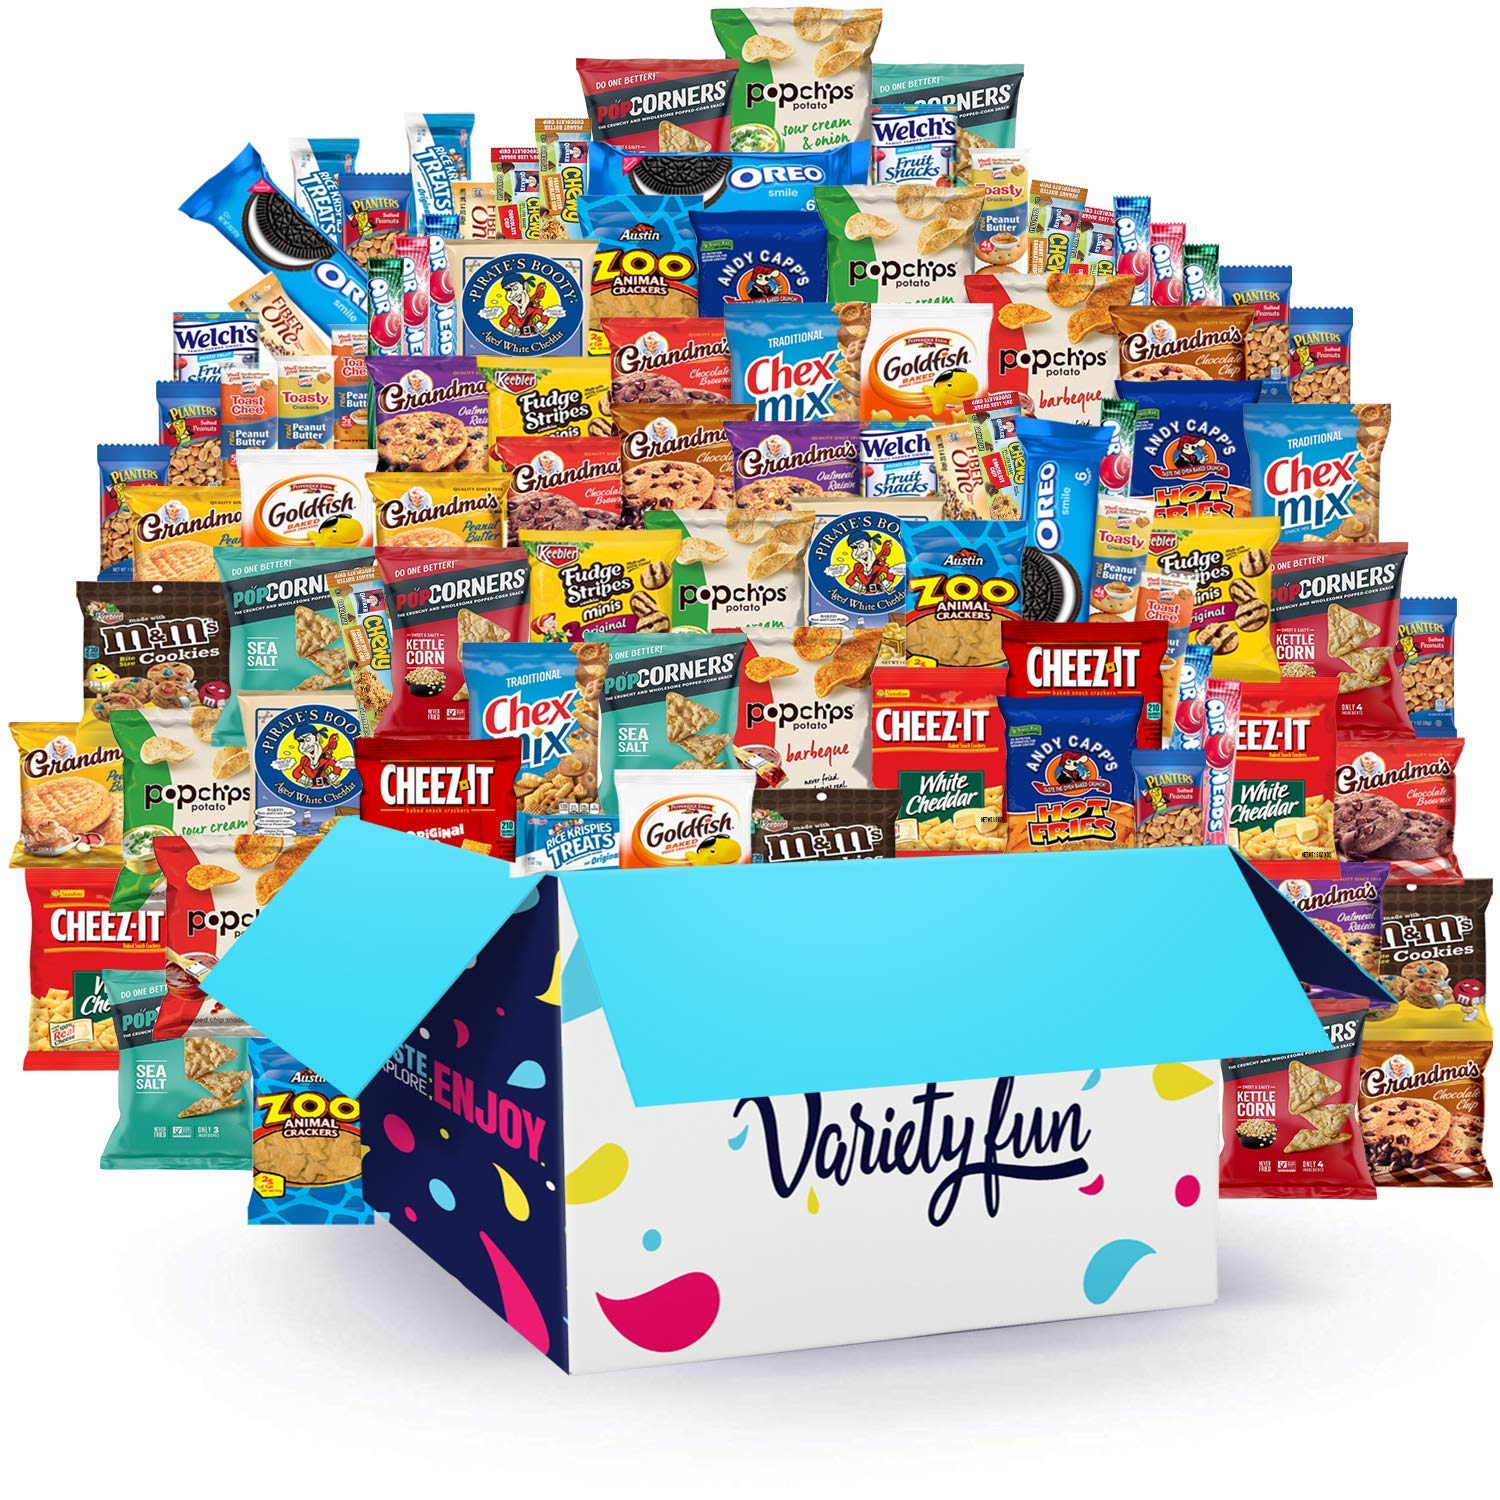 Variety Fun Office Snacks (160 Count) - Bulk Assortment - Over 15 Pounds of Chips Cookies & Candy by Custom Varietea (Image #1)